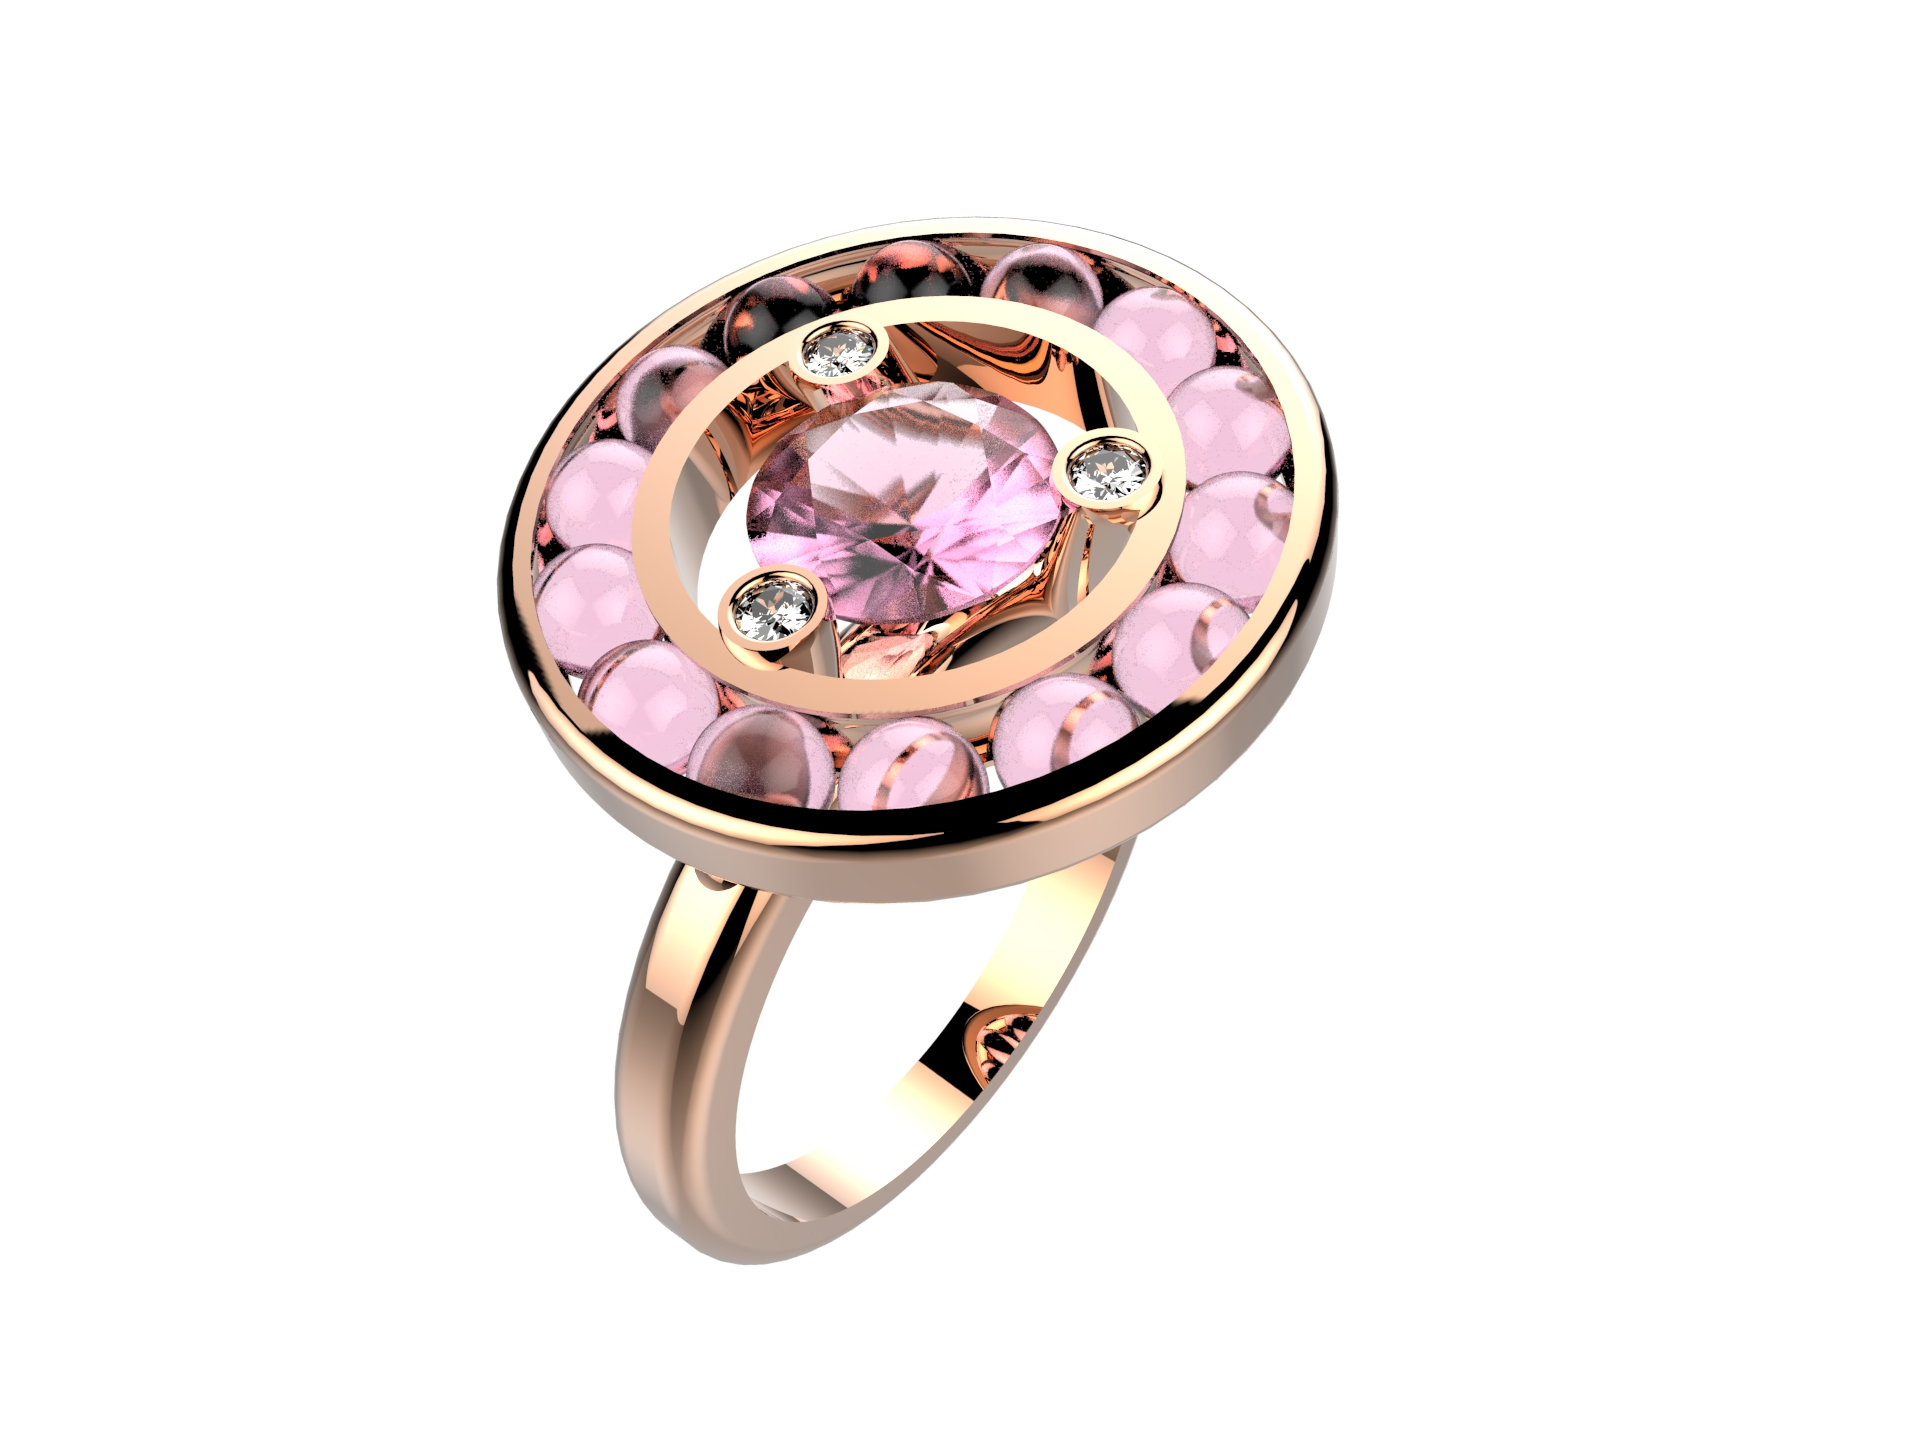 Bague Moov Billes or rose qz 2550 €